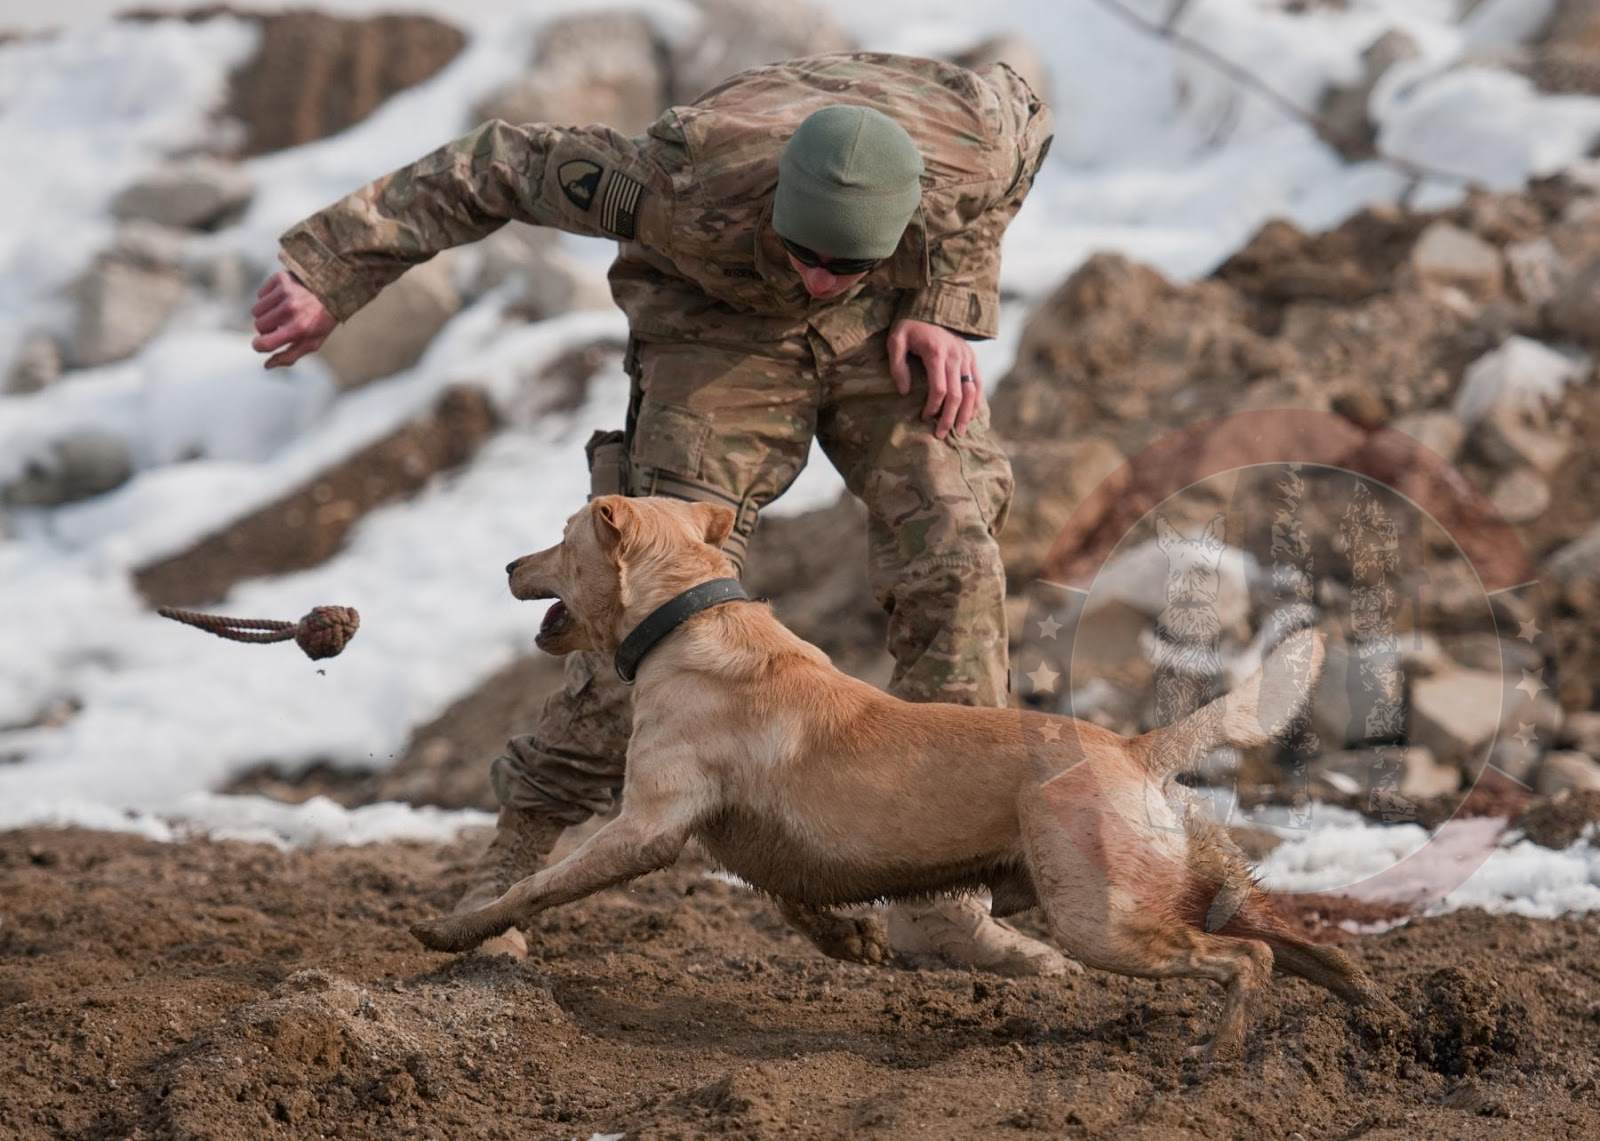 Sgt. Garrett Grenier, a dog handler, and Staff Sgt. Drake, a mine-detection dog, enjoy a game of fetch before training at Bagram Airfield, Afghanistan, Jan. 8, 2013.